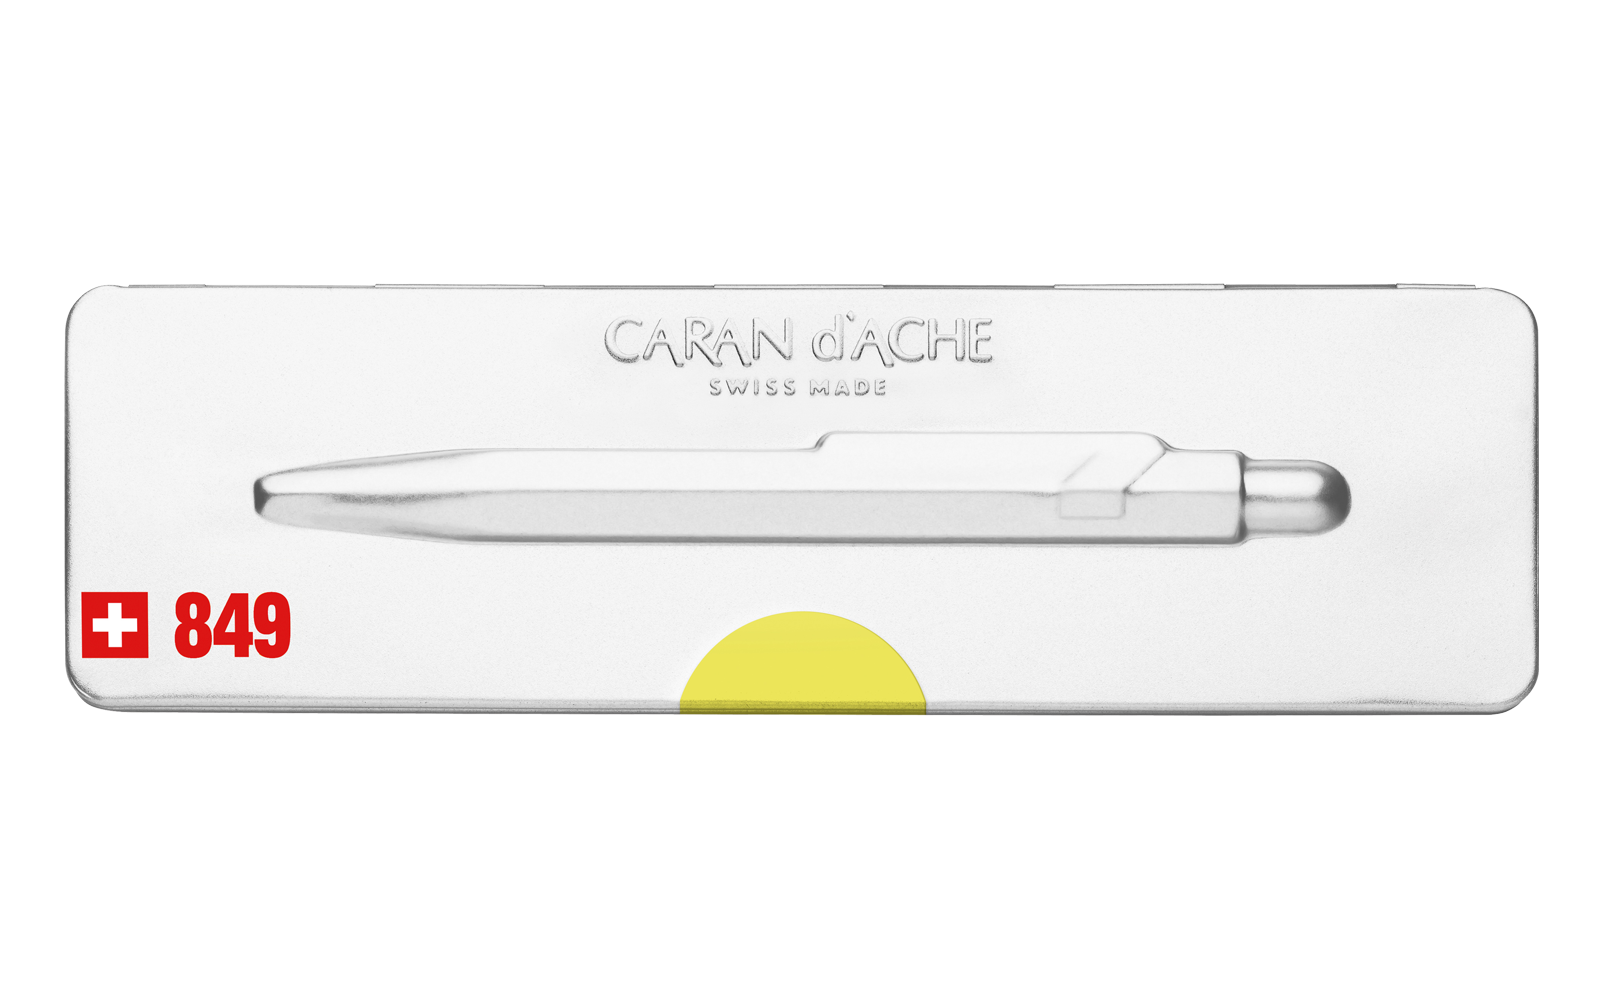 Carandache Office 849 Pop Line - Yellow, шариковая ручка, M